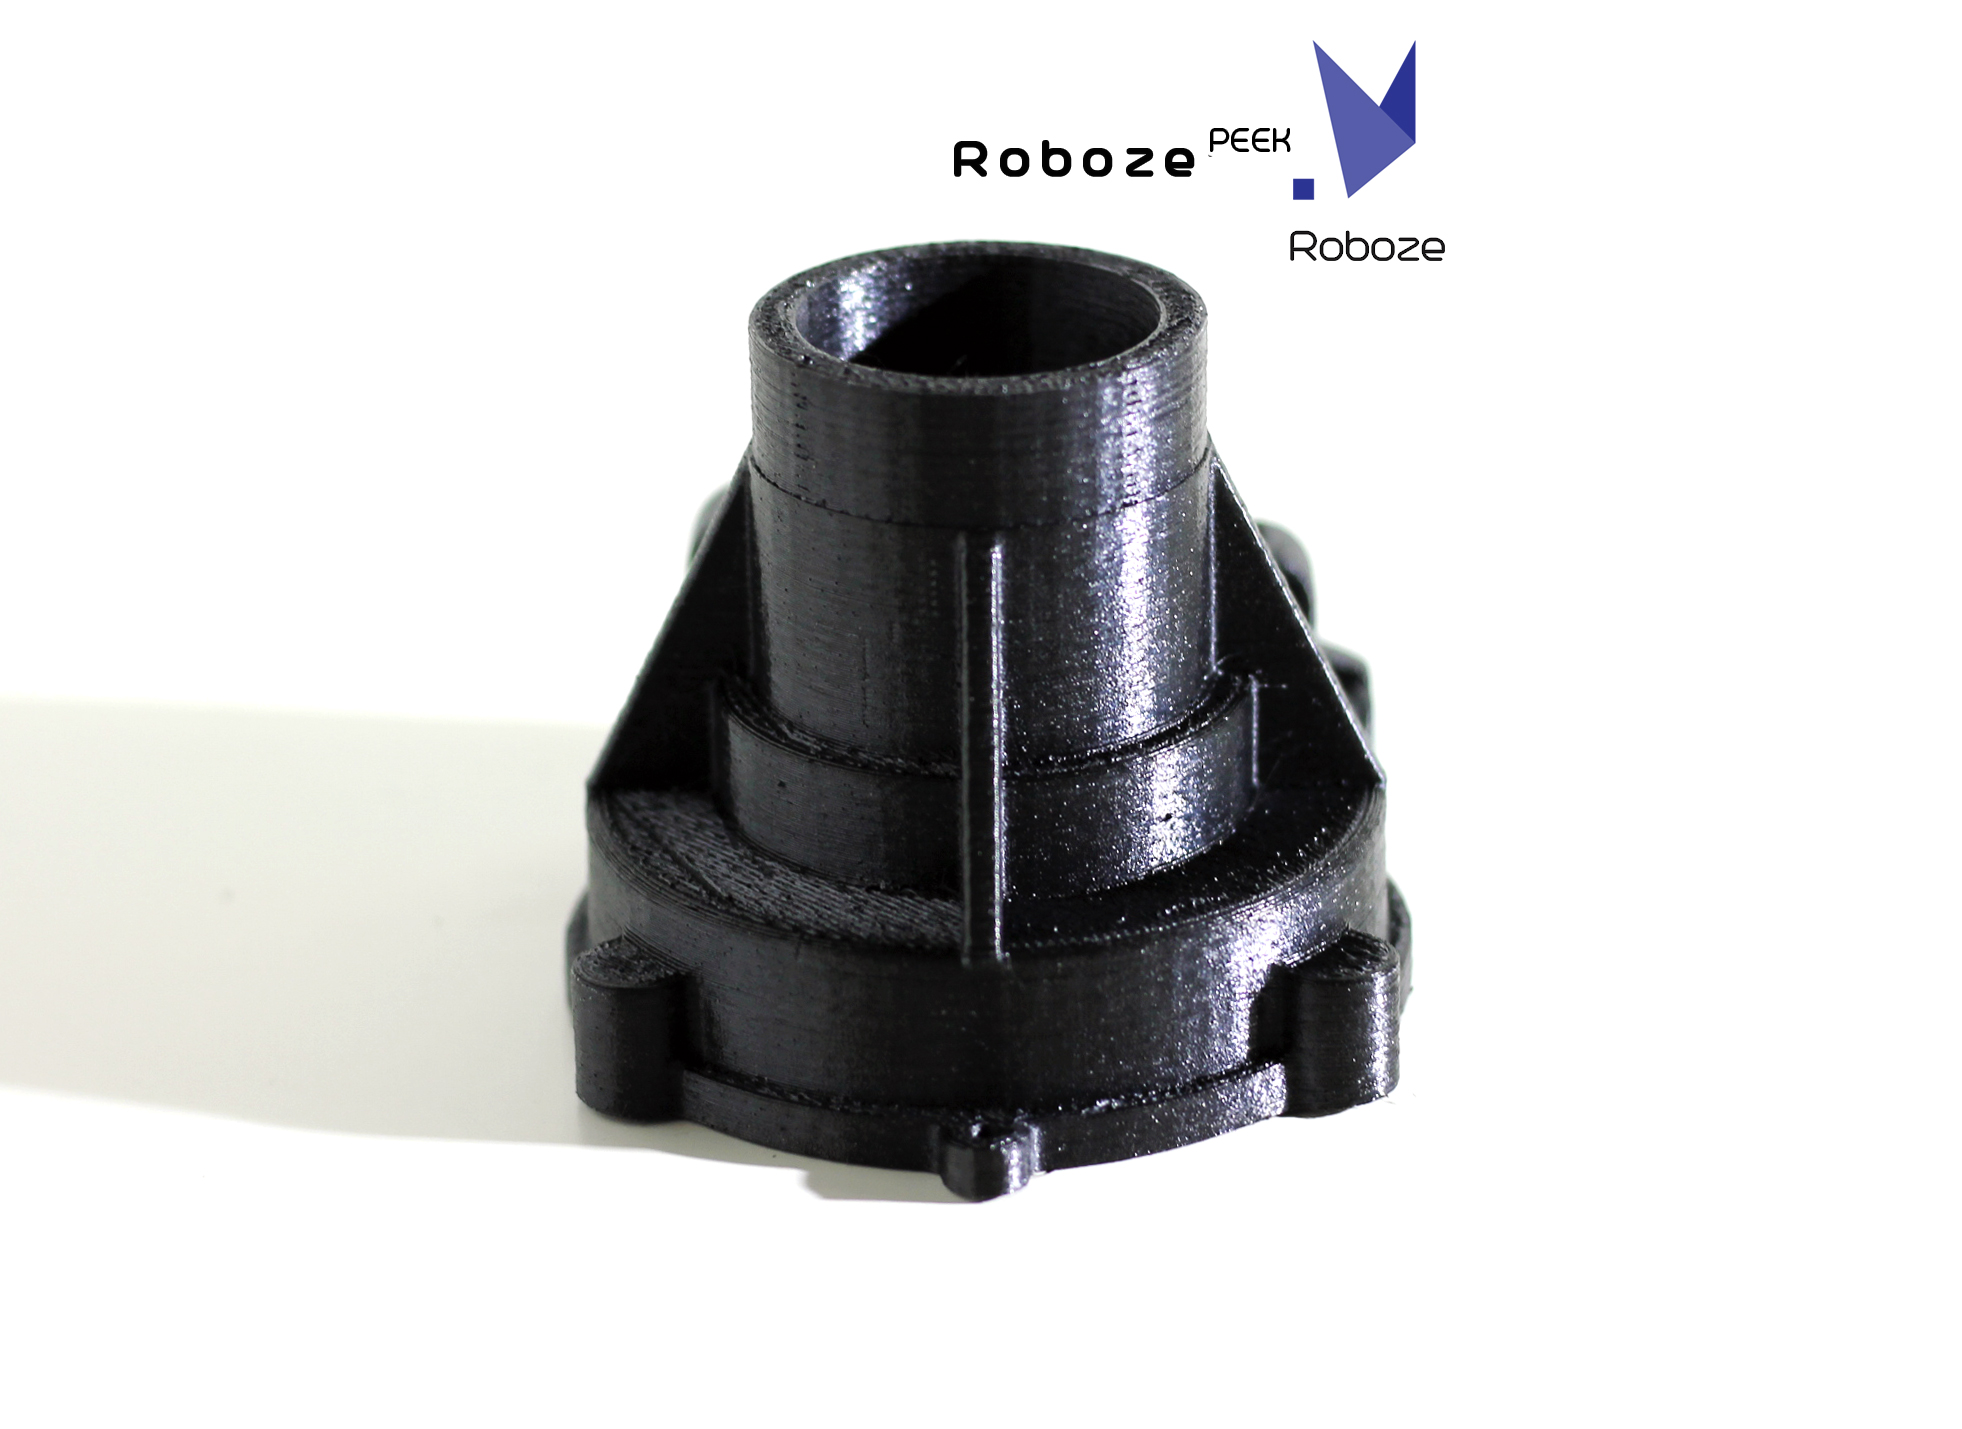 Roboze_Peek_WaterPump(3)